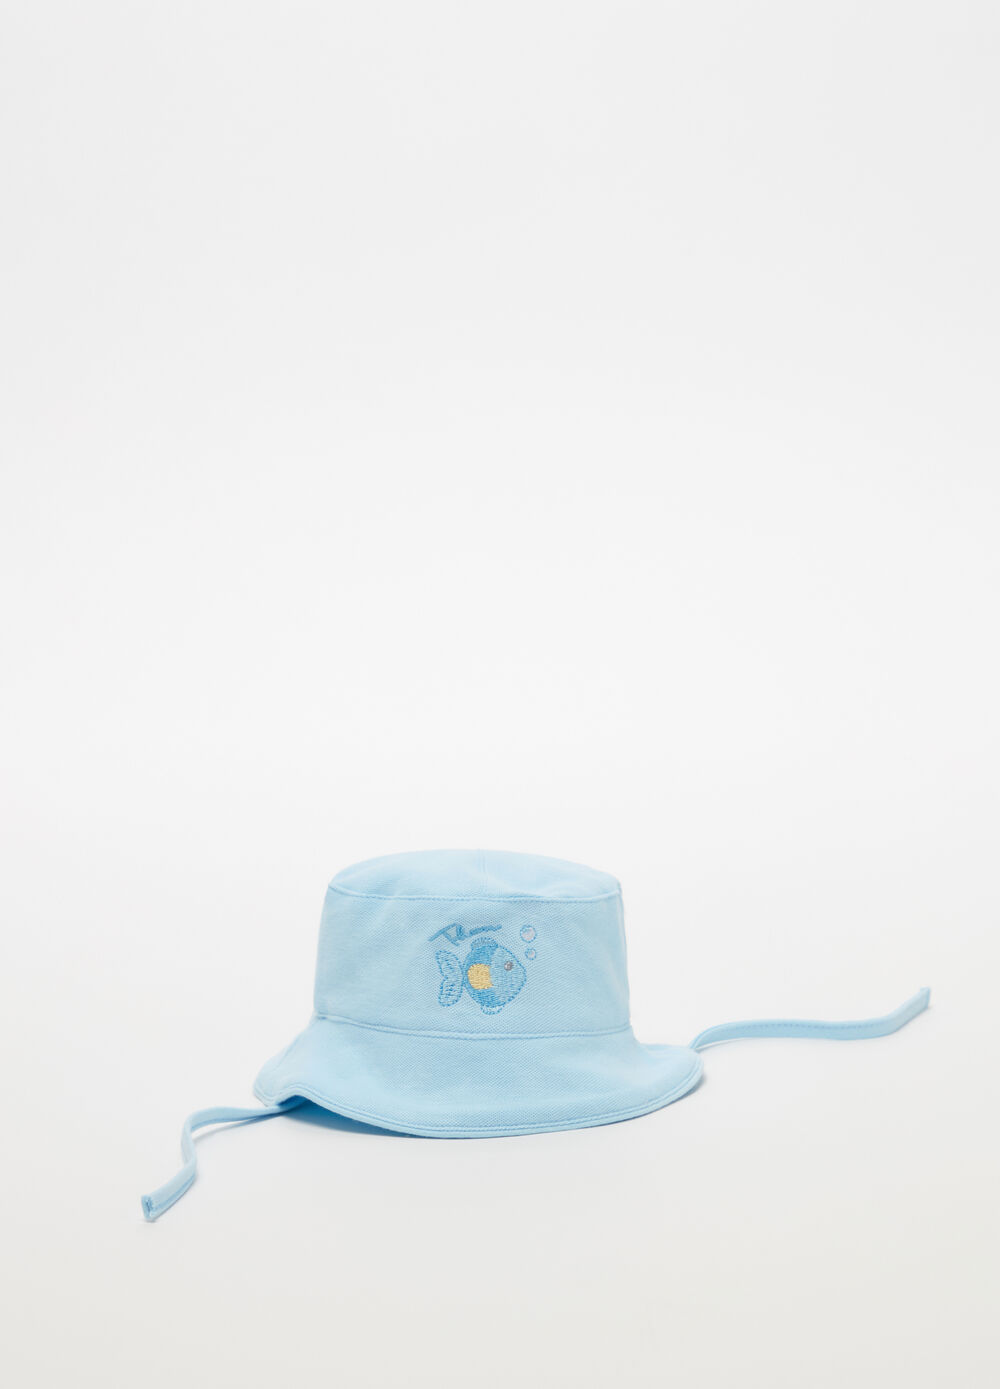 THUN biocotton fishing hat